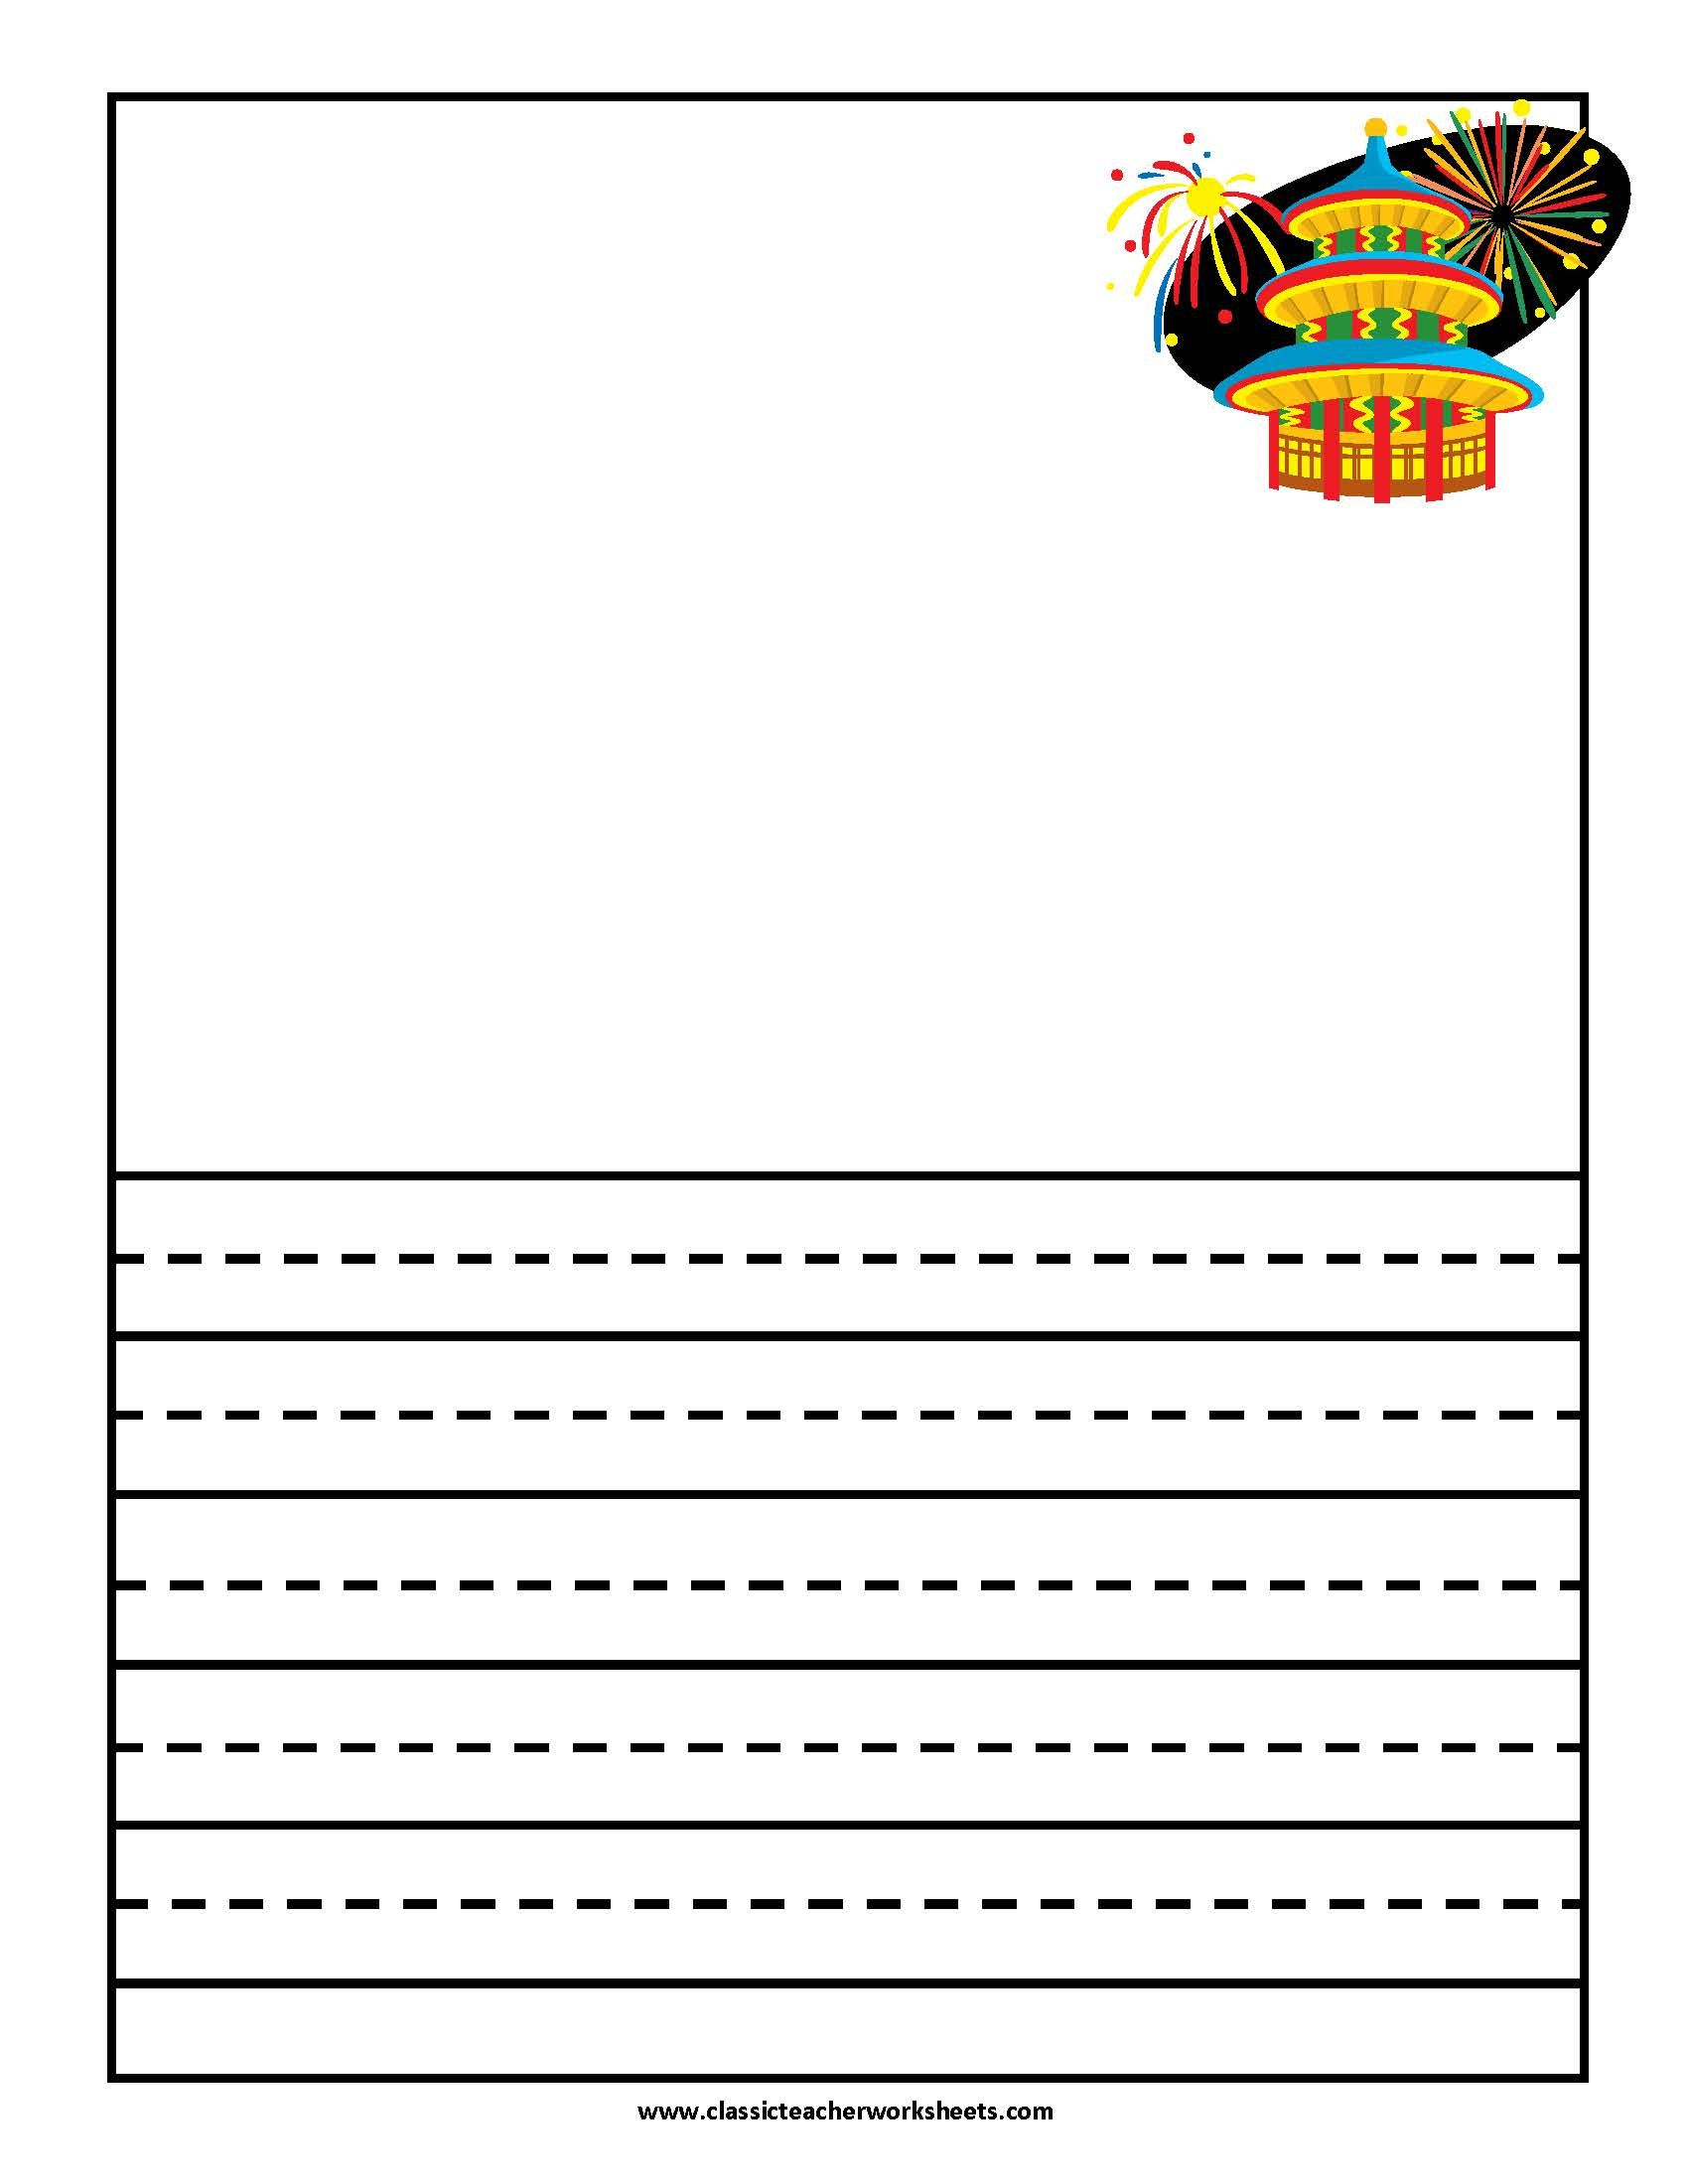 writing paper chinese new year check out our website classicteacherworksheetscom for our collection of worksheets bookmarks lesson plan templates